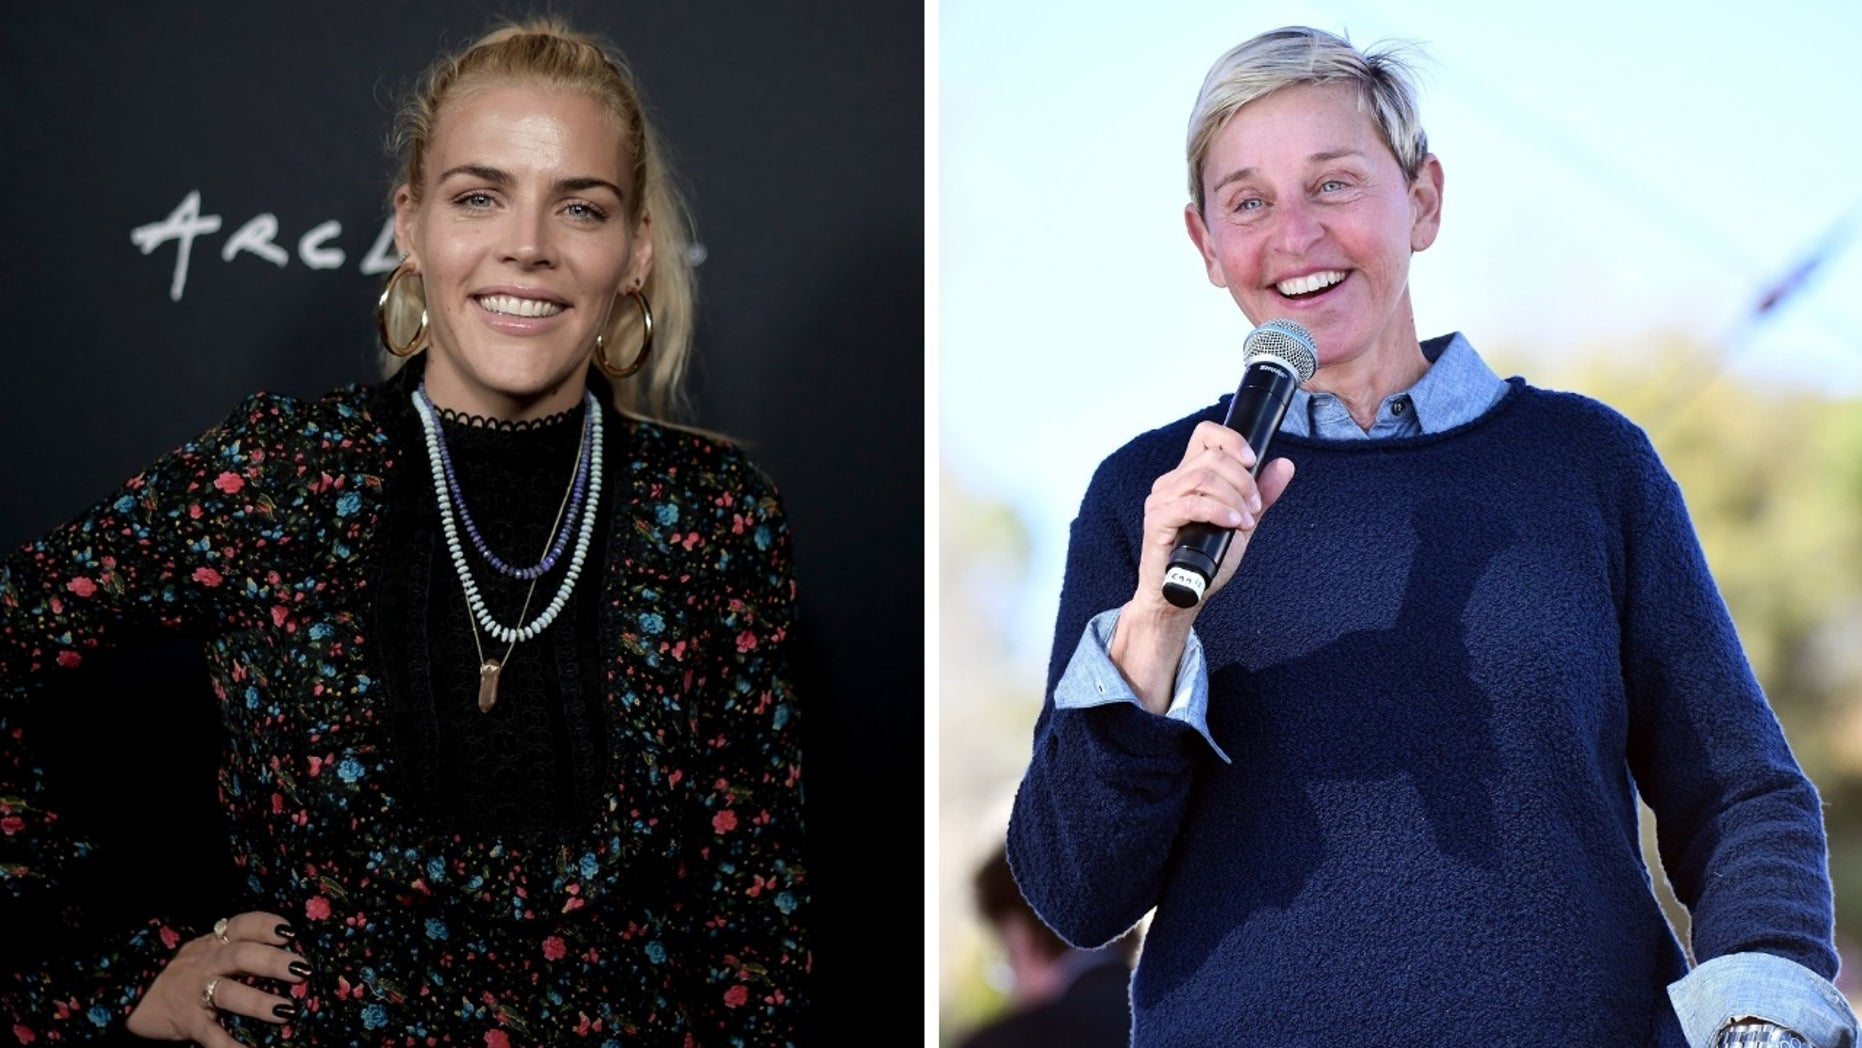 Busy Philipps and Ellen DeGeneres recalled their experiences with sexual abuse.